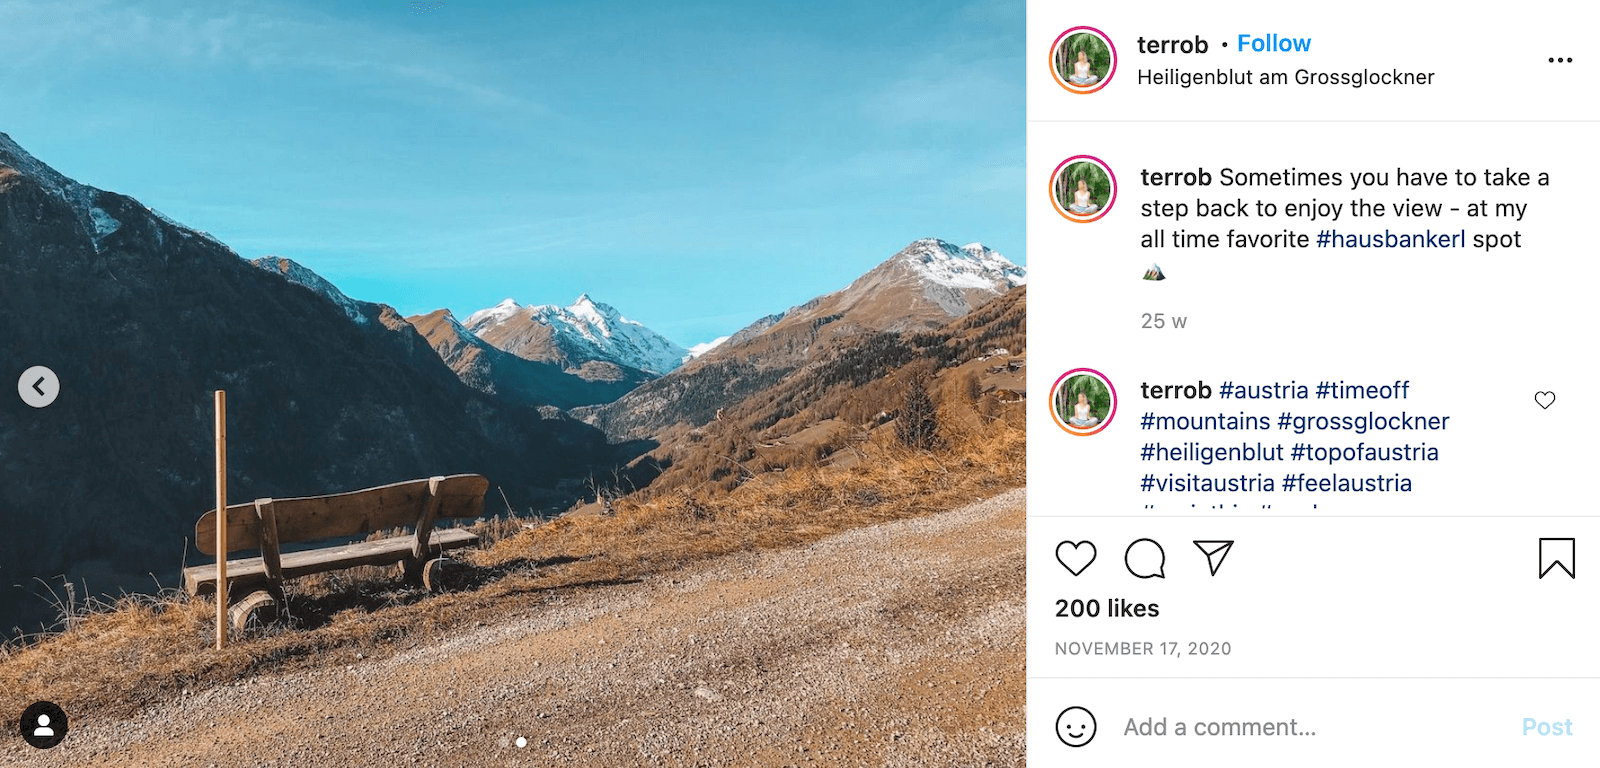 Instagram post by user @terrob showing a wooden bench on the edge of a path overlooking a mountain range. The caption says: Sometimes you have to take a step back to enjoy the view - at my all time favorite #hausbankerl spot 🏔